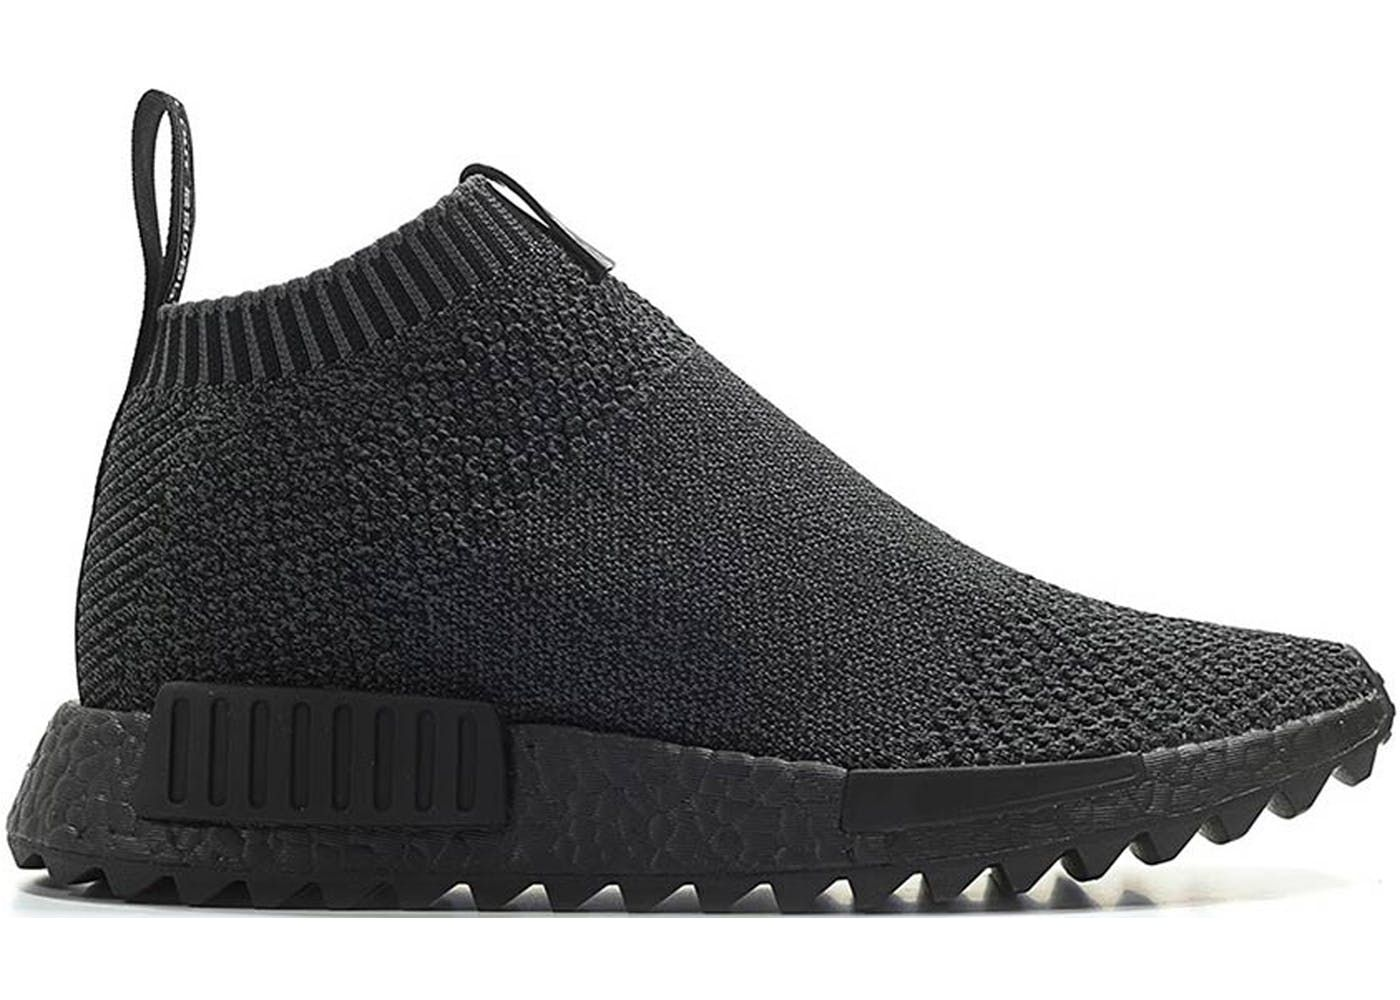 buscar Conciso Cromático  adidas NMD CS1 The Good Will Out Ankoku Toshi Jutsu in 2021 | Sneakers men  fashion, Adidas nmd, Sneakers